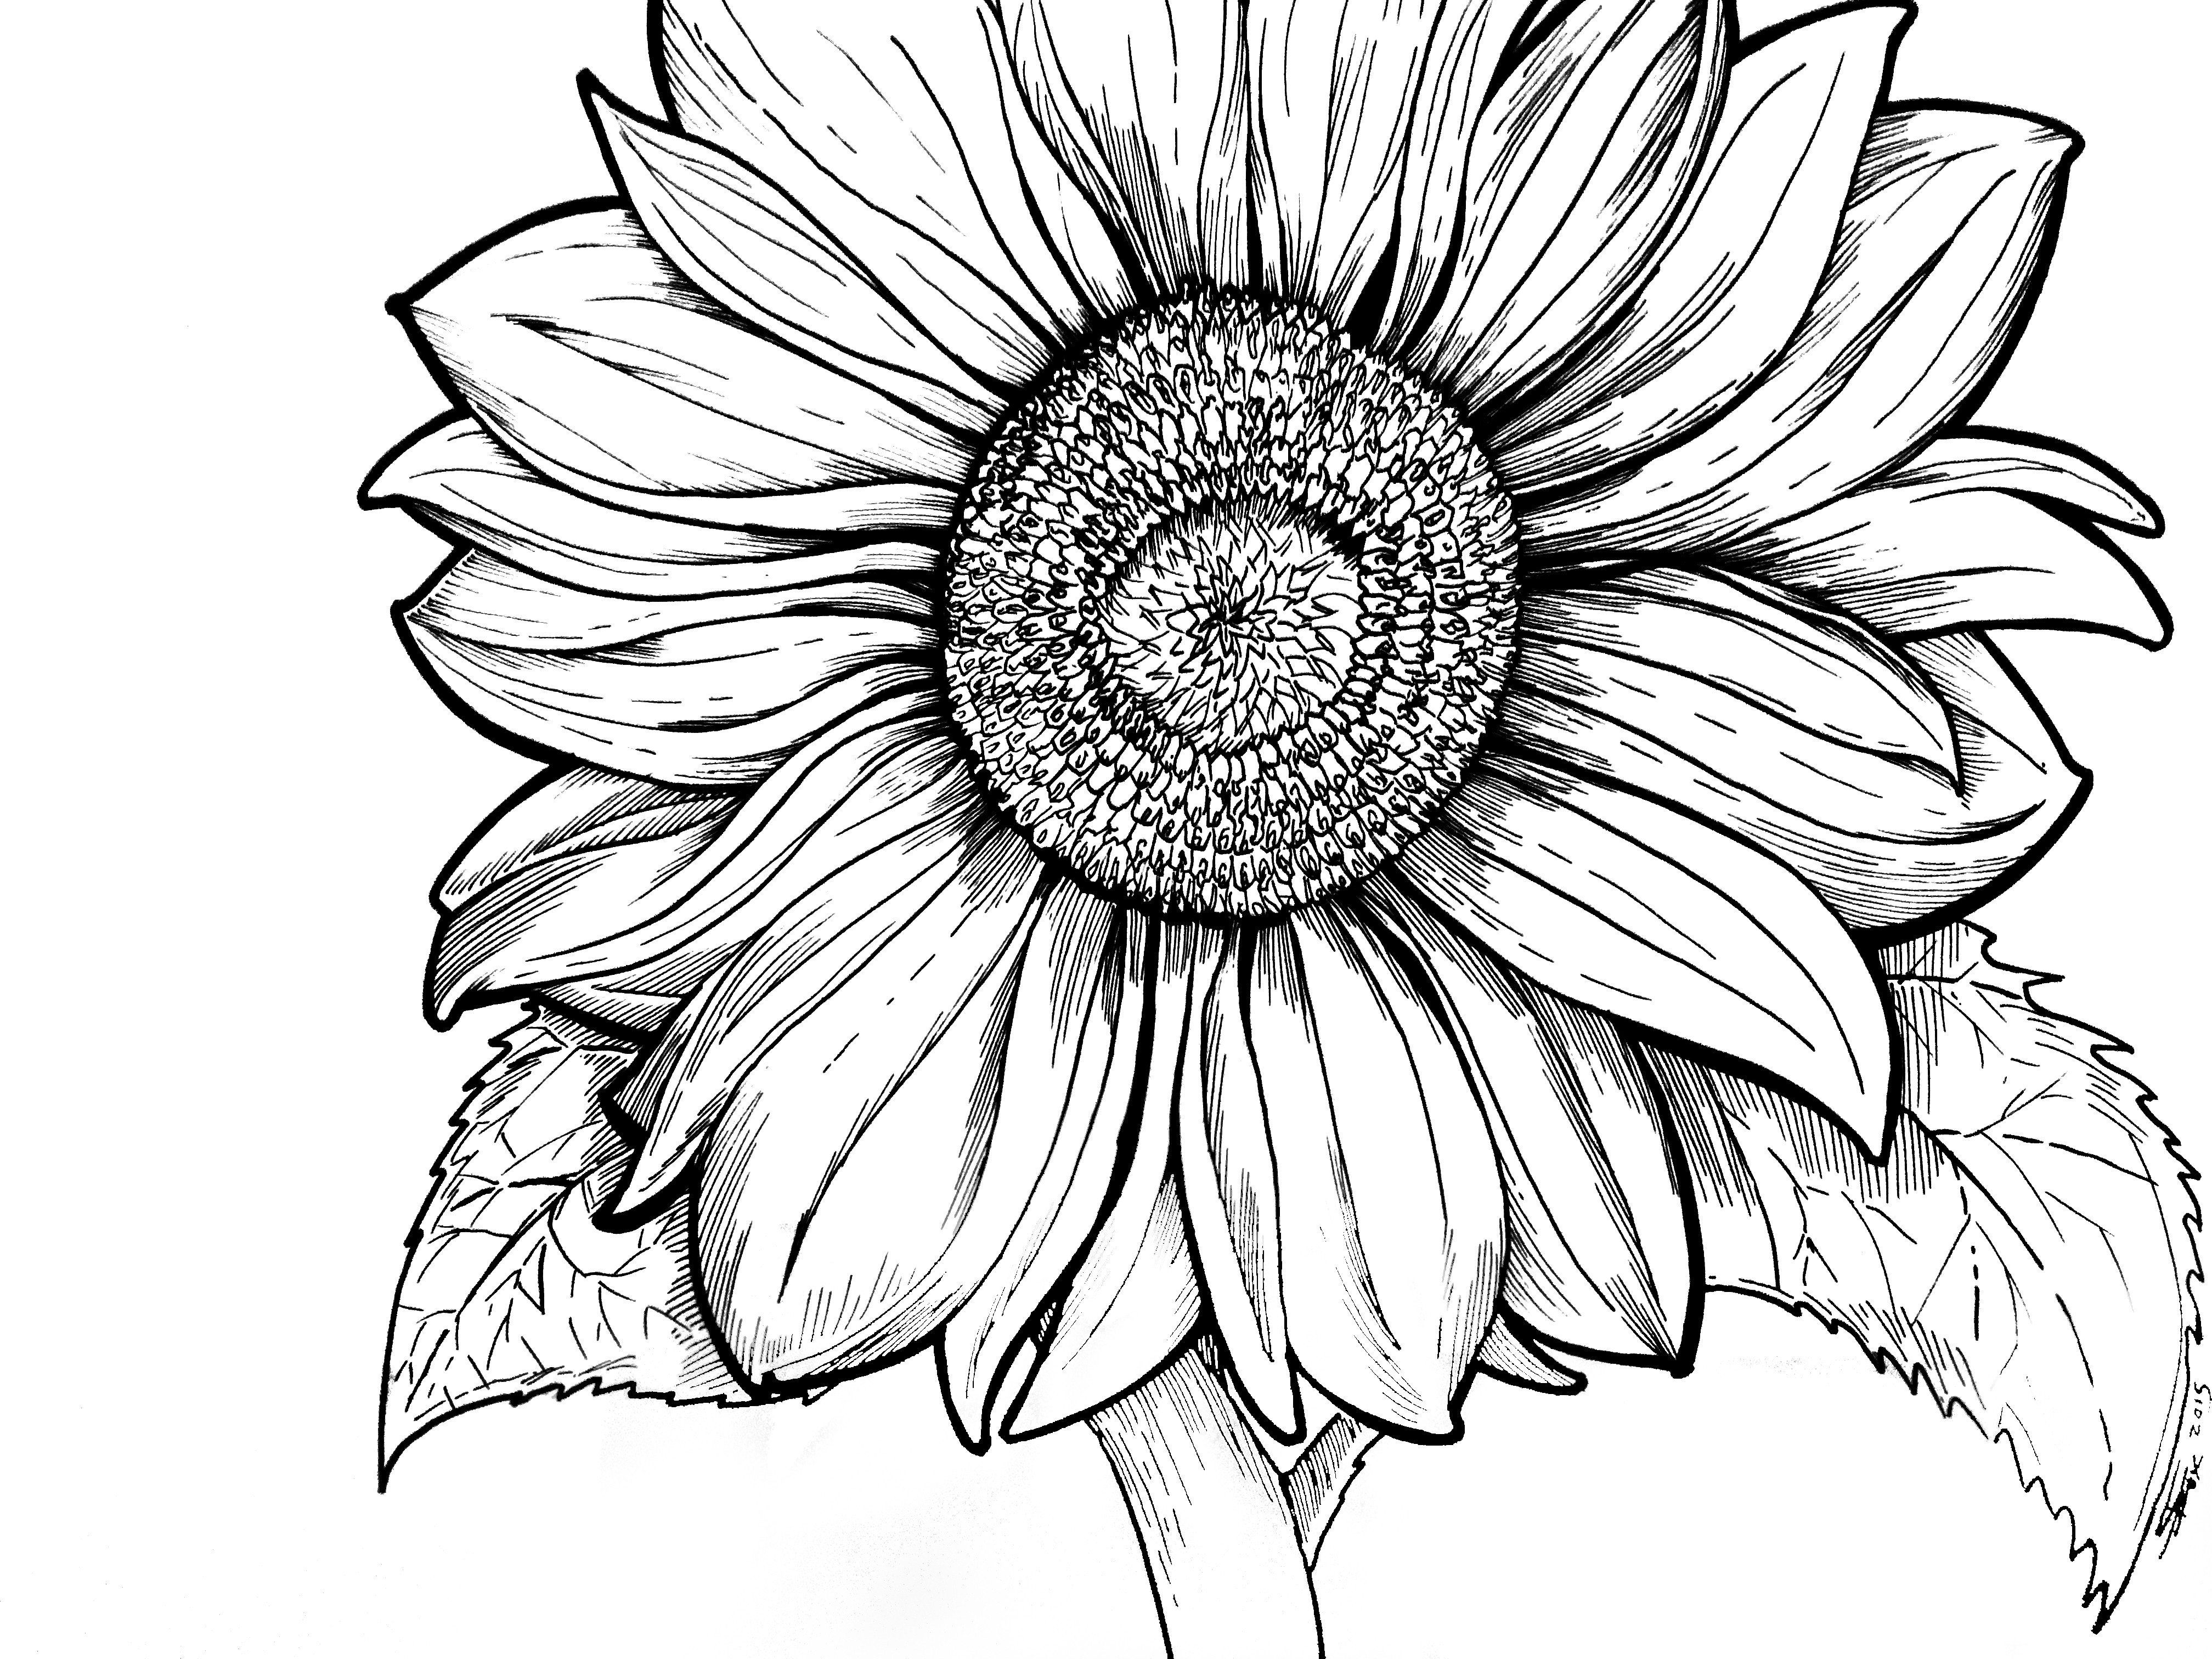 Sunflower Coloring Pages For Adults  Sunflower Adult Coloring Page thekindproject